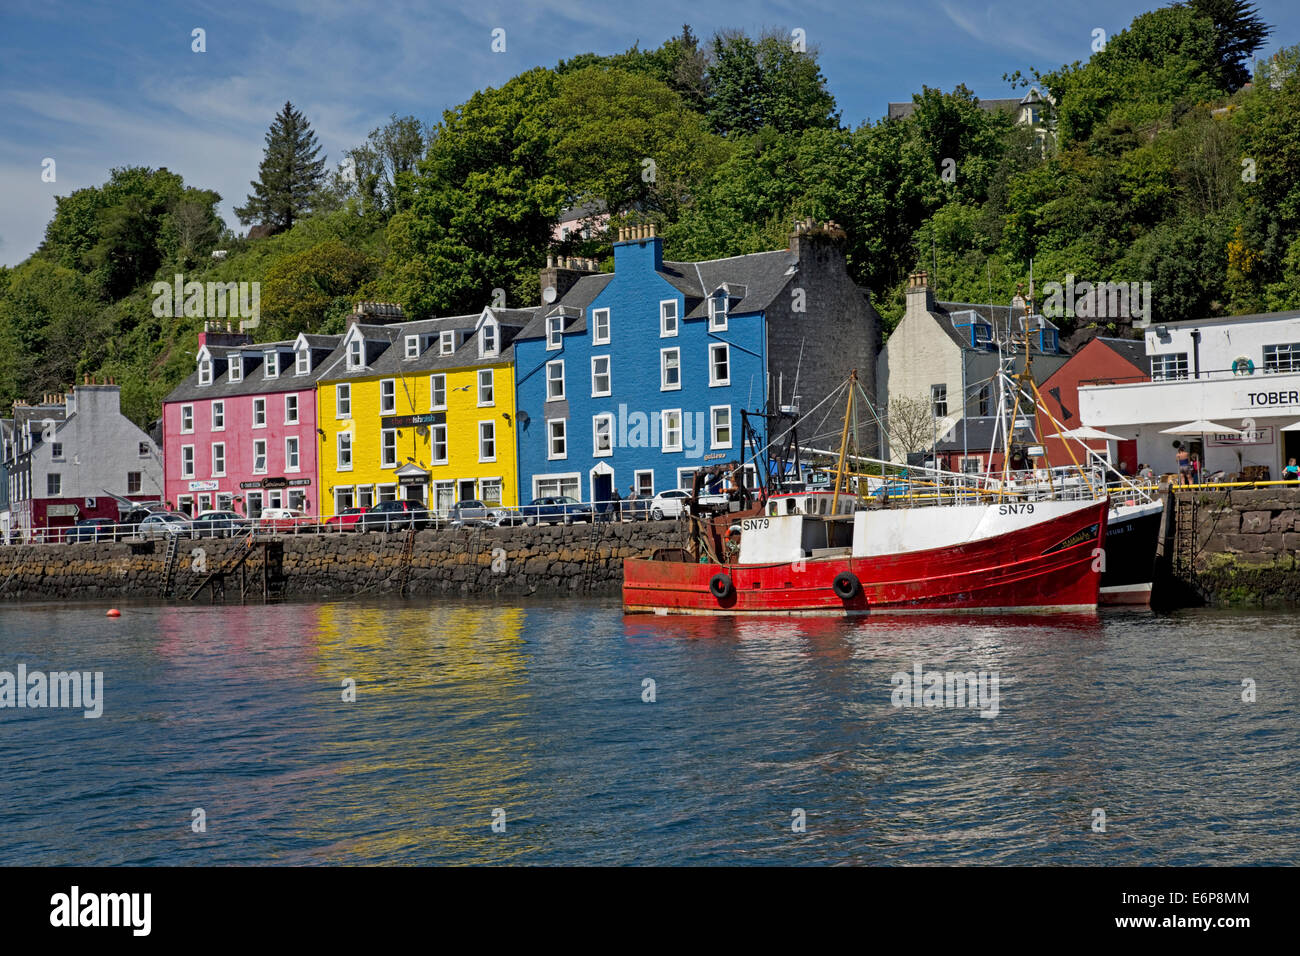 Colourful houses on quayside Tobermory harbour Isle of Mull Scotland - Stock Image